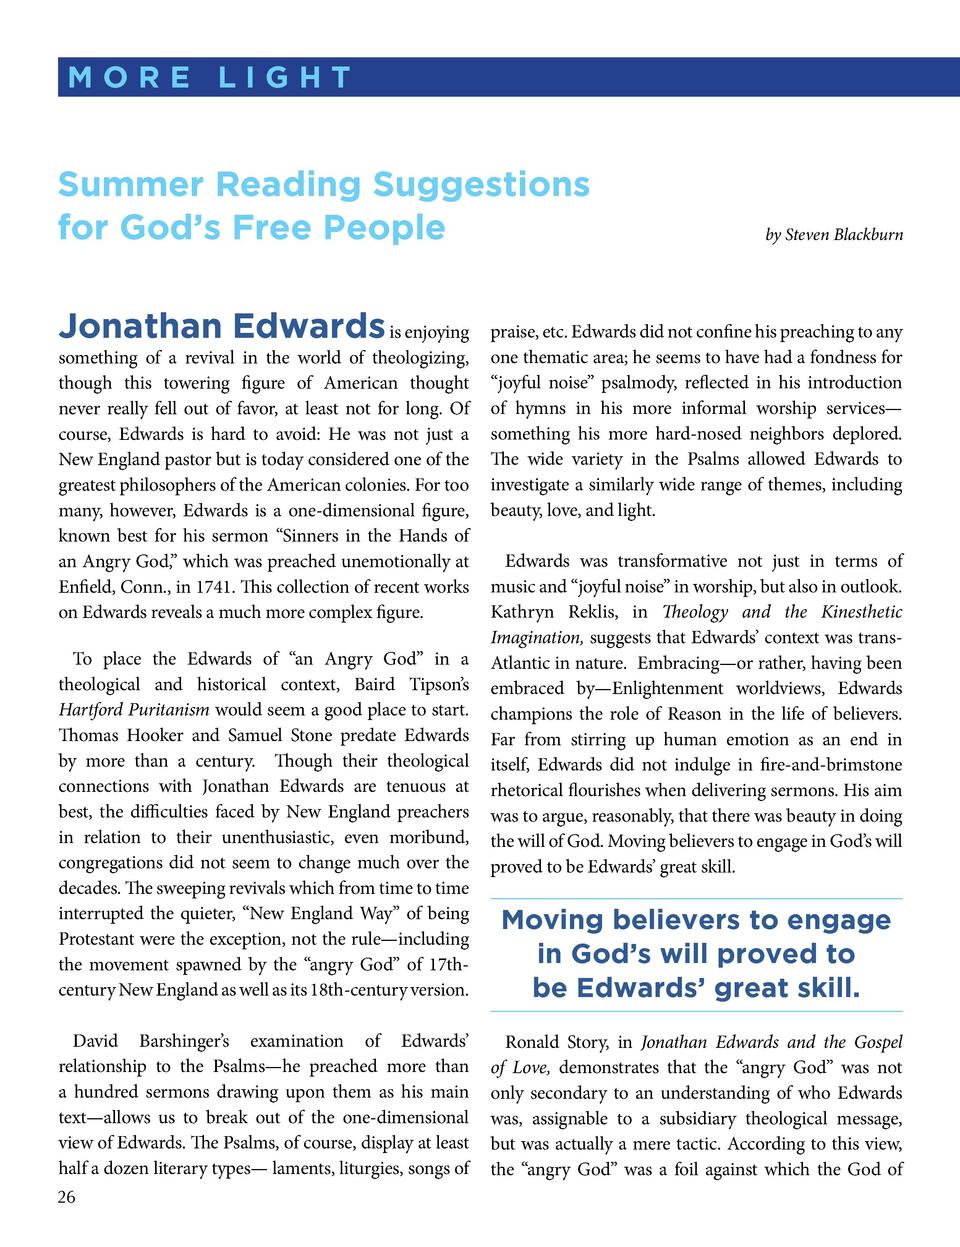 more light  summer reading suggestions for god   s free People Jonathan edwards is enjoying  something of a revival in the...